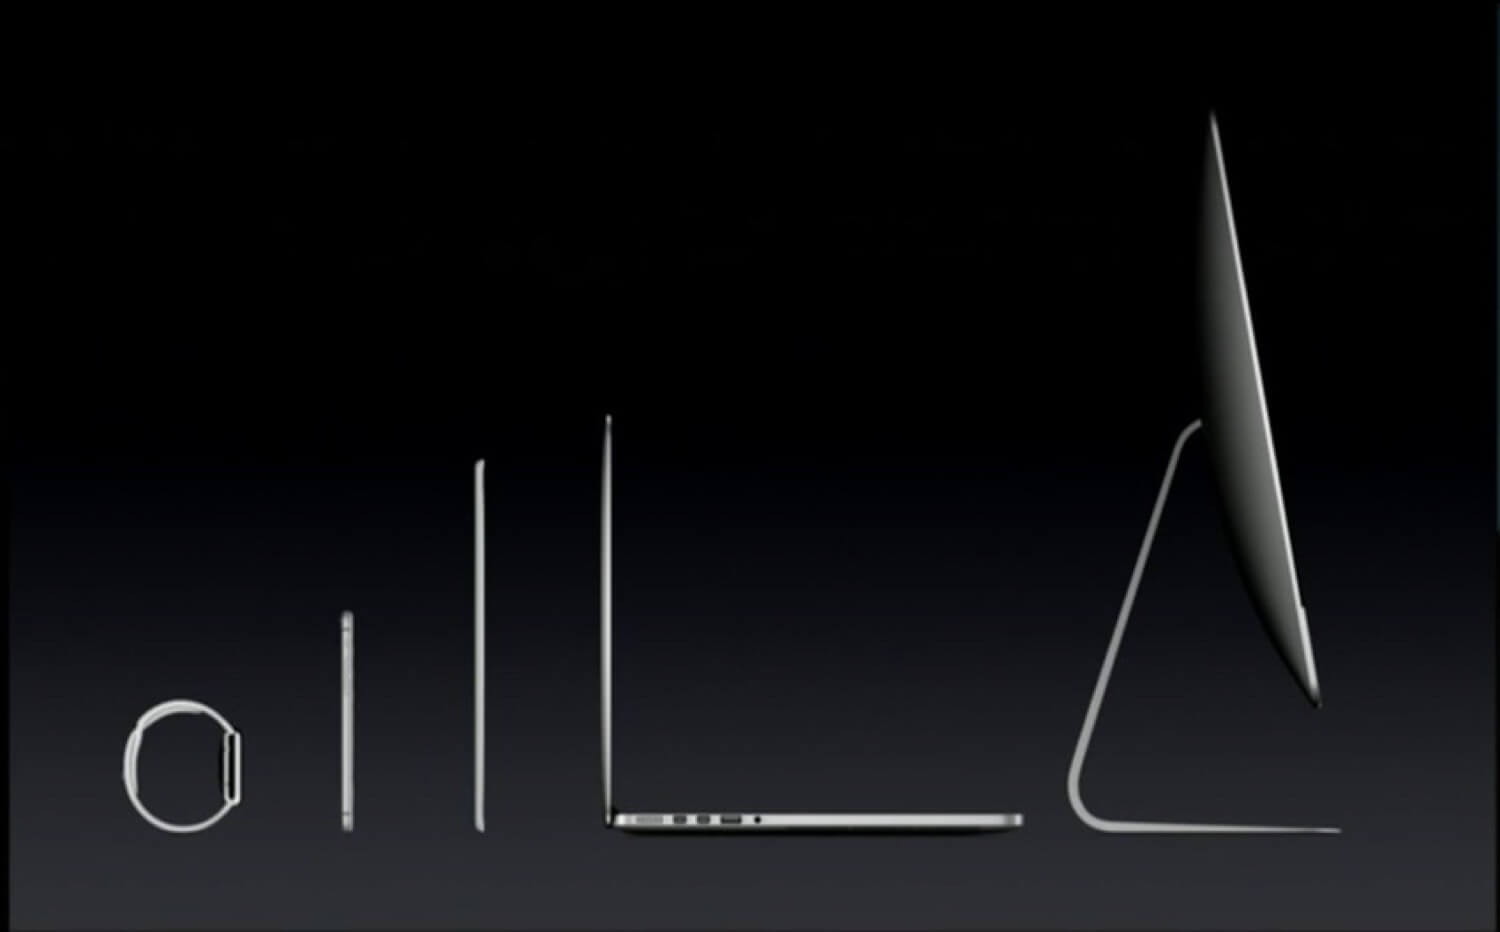 My first iMac makes my Apple device lineup complete